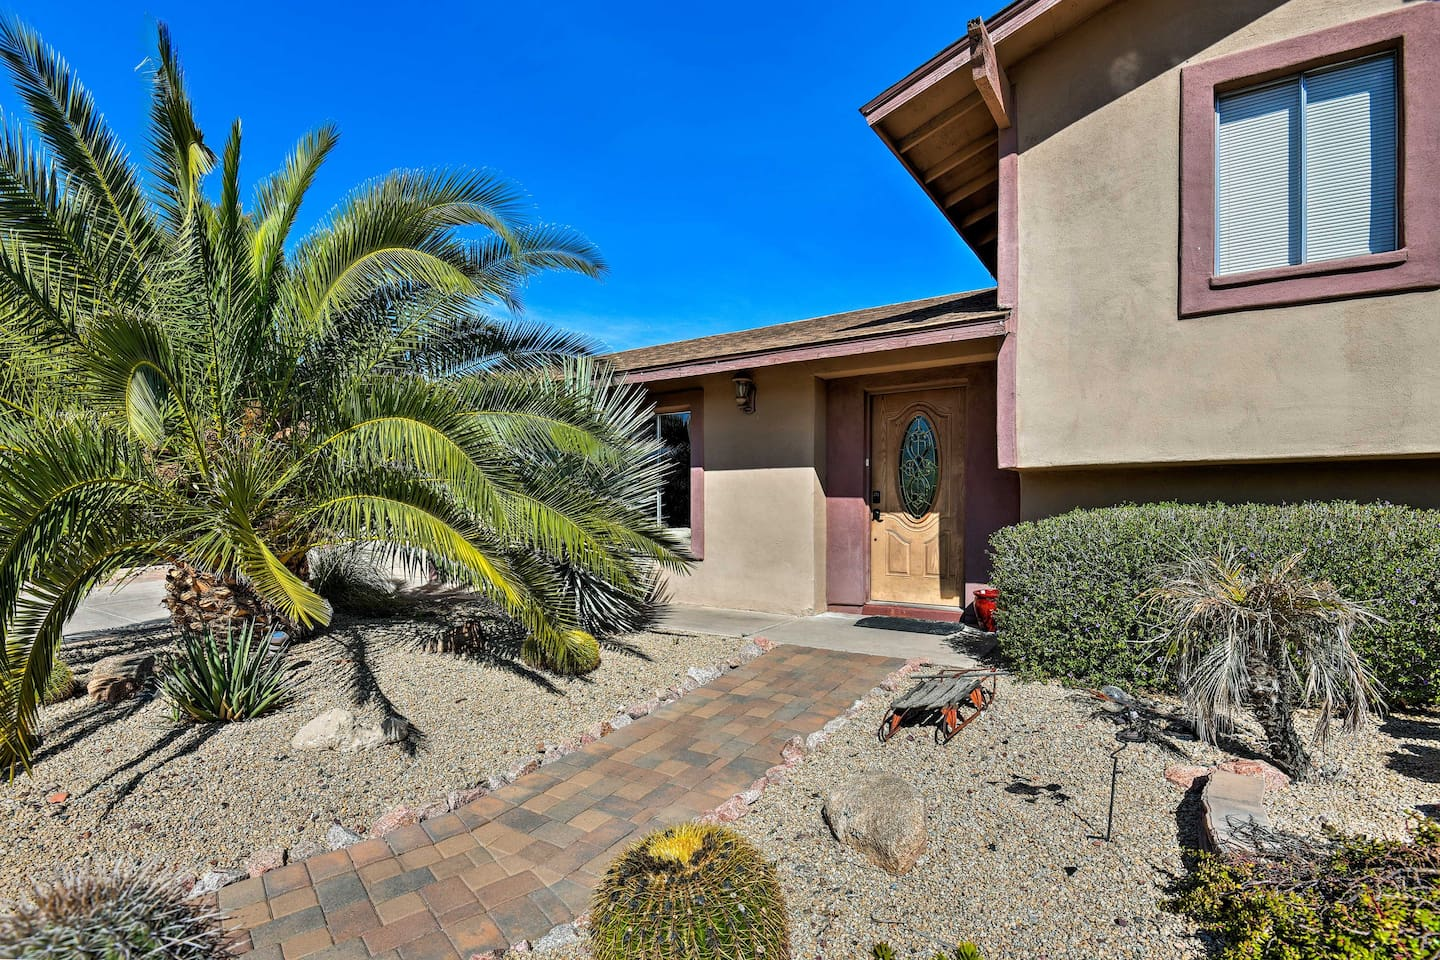 Book your South Scottsdale escape to this 3-bedroom, 2-bath split-level home.